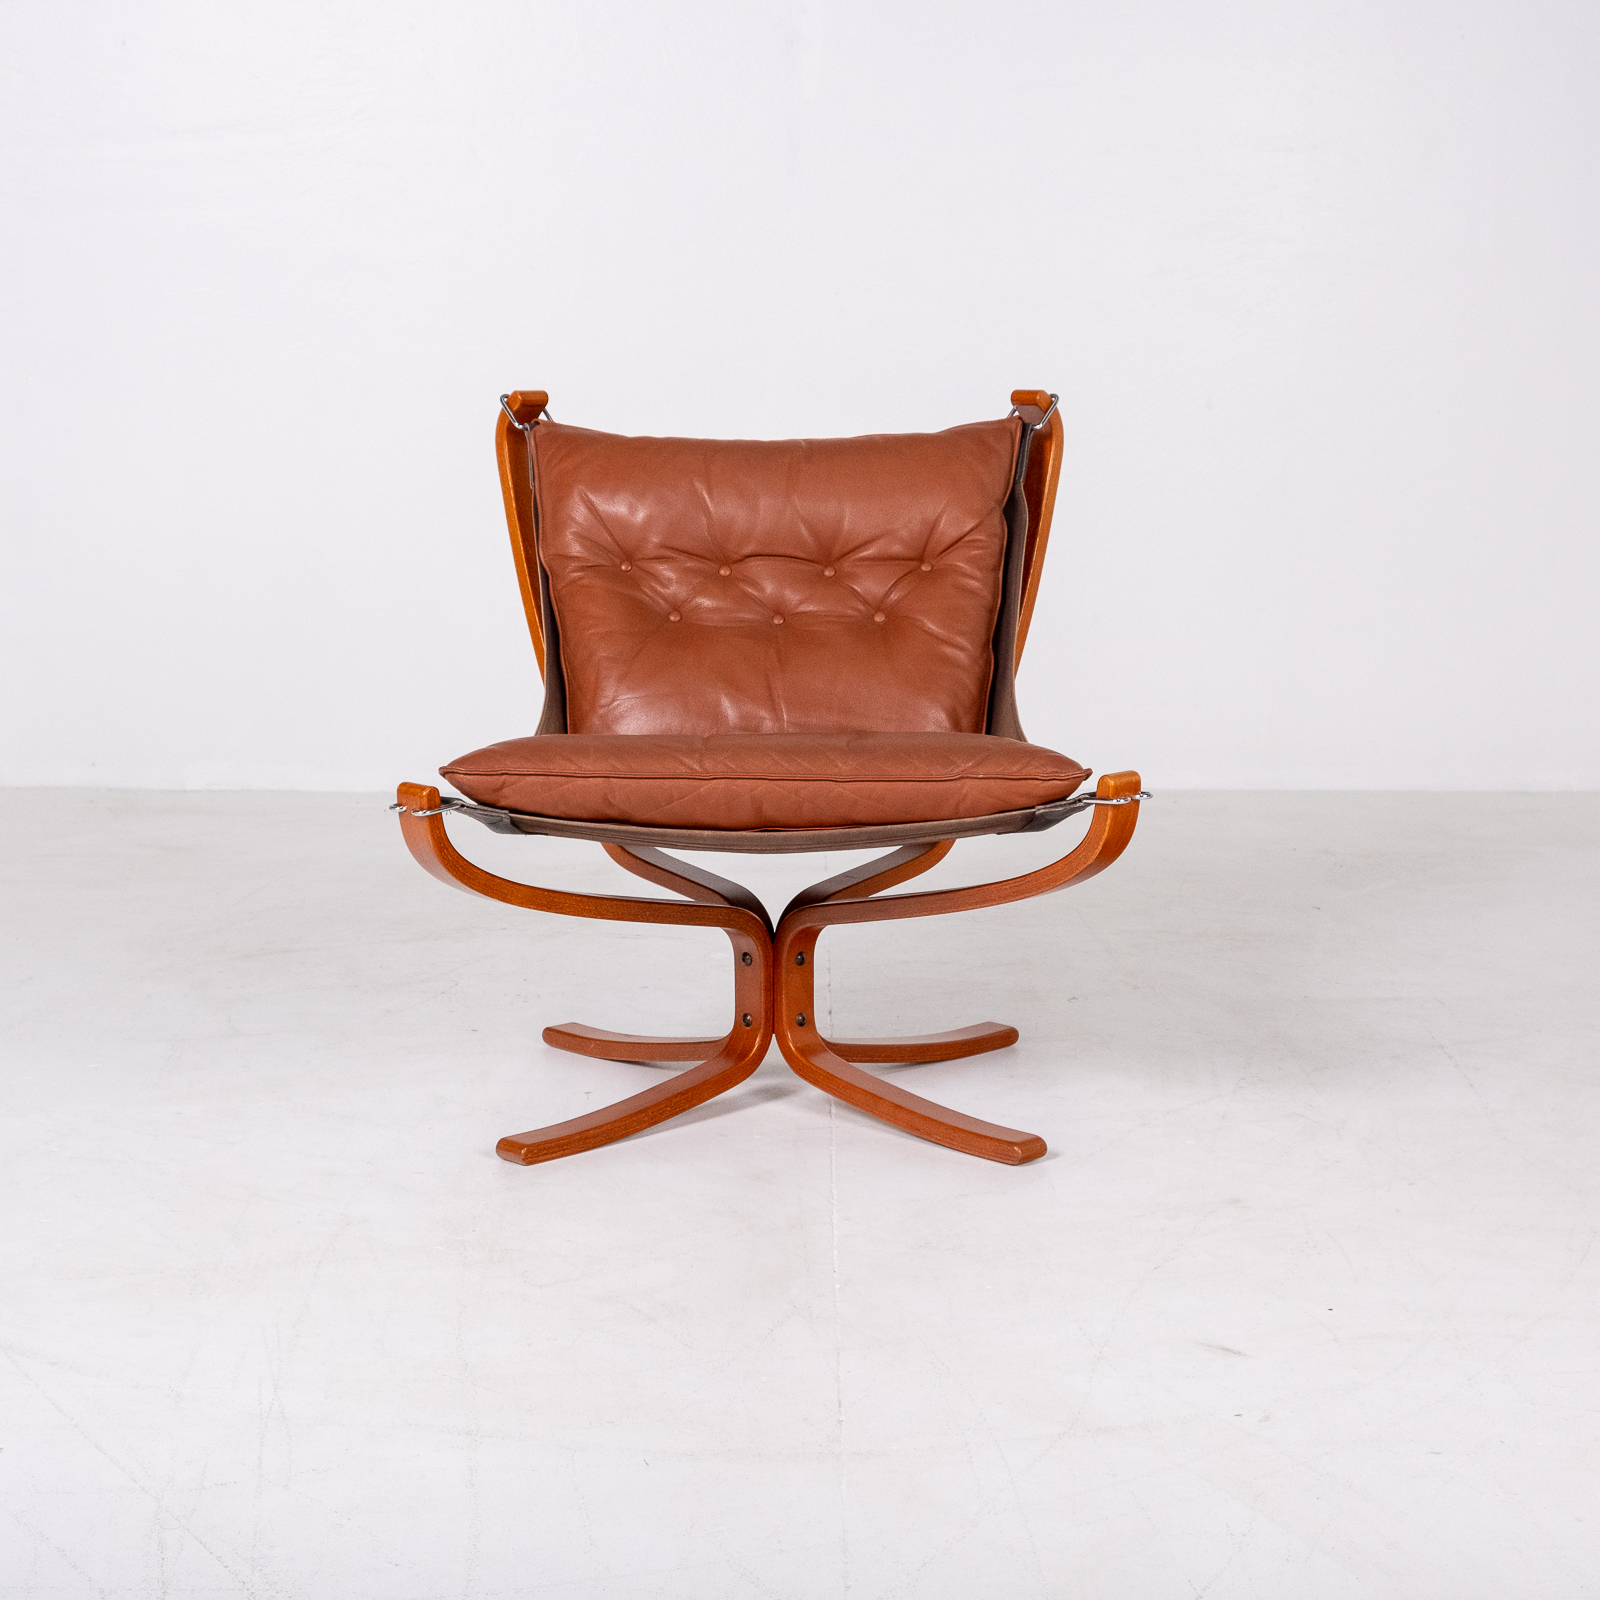 Low Back Falcon Armchair In Tan Leather By Sigurd Ressell For Vatne Mobler, 1971, Norway 06